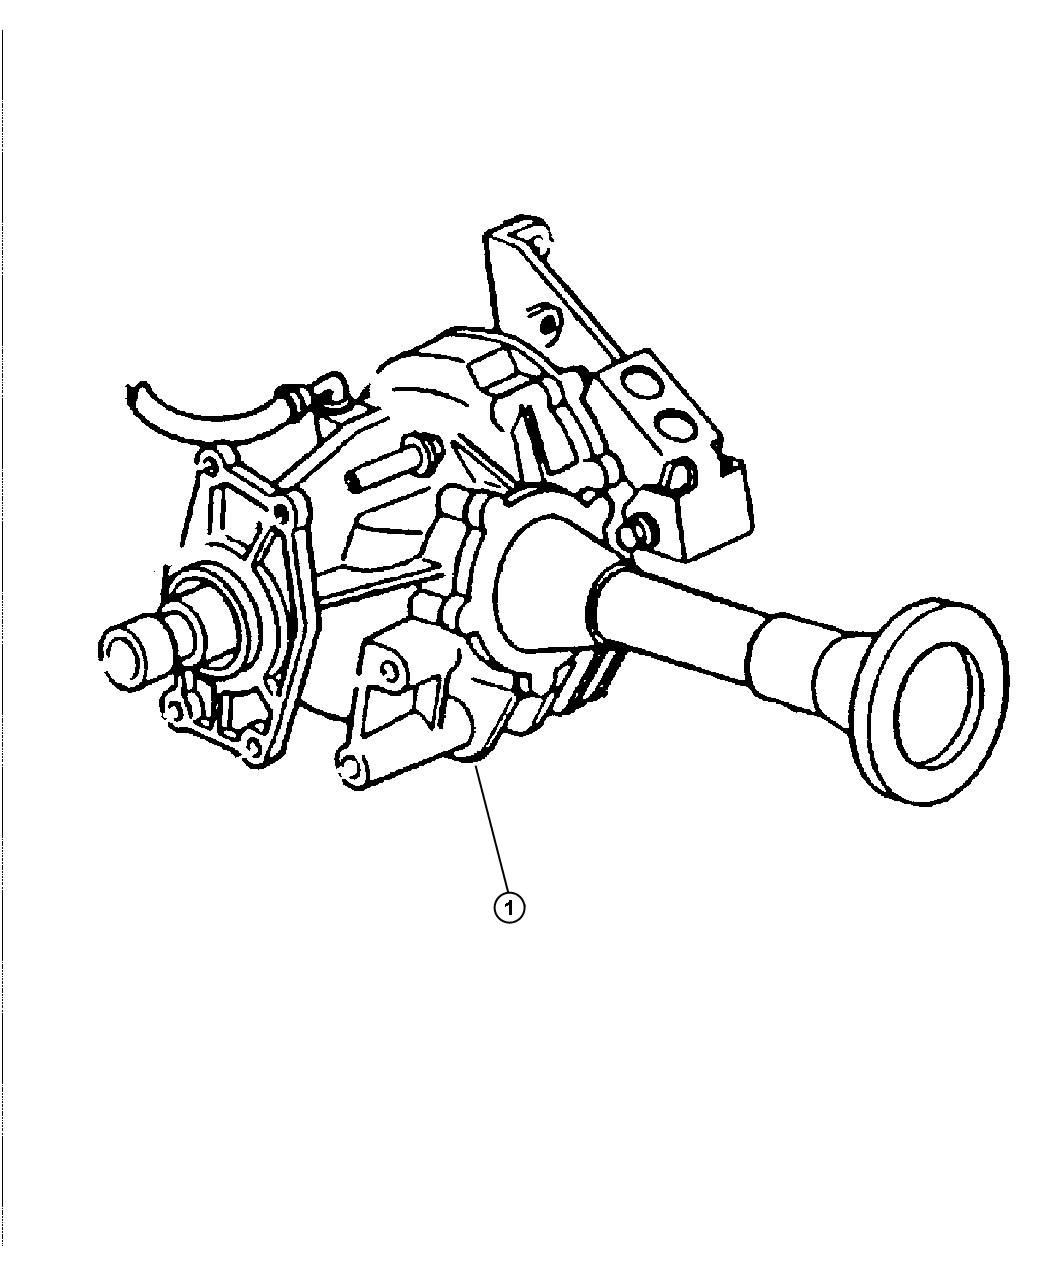 Dodge Grand Caravan Power Transfer Unit Assembly Used With 41ae Automatic Transaxle Ns Body Awd